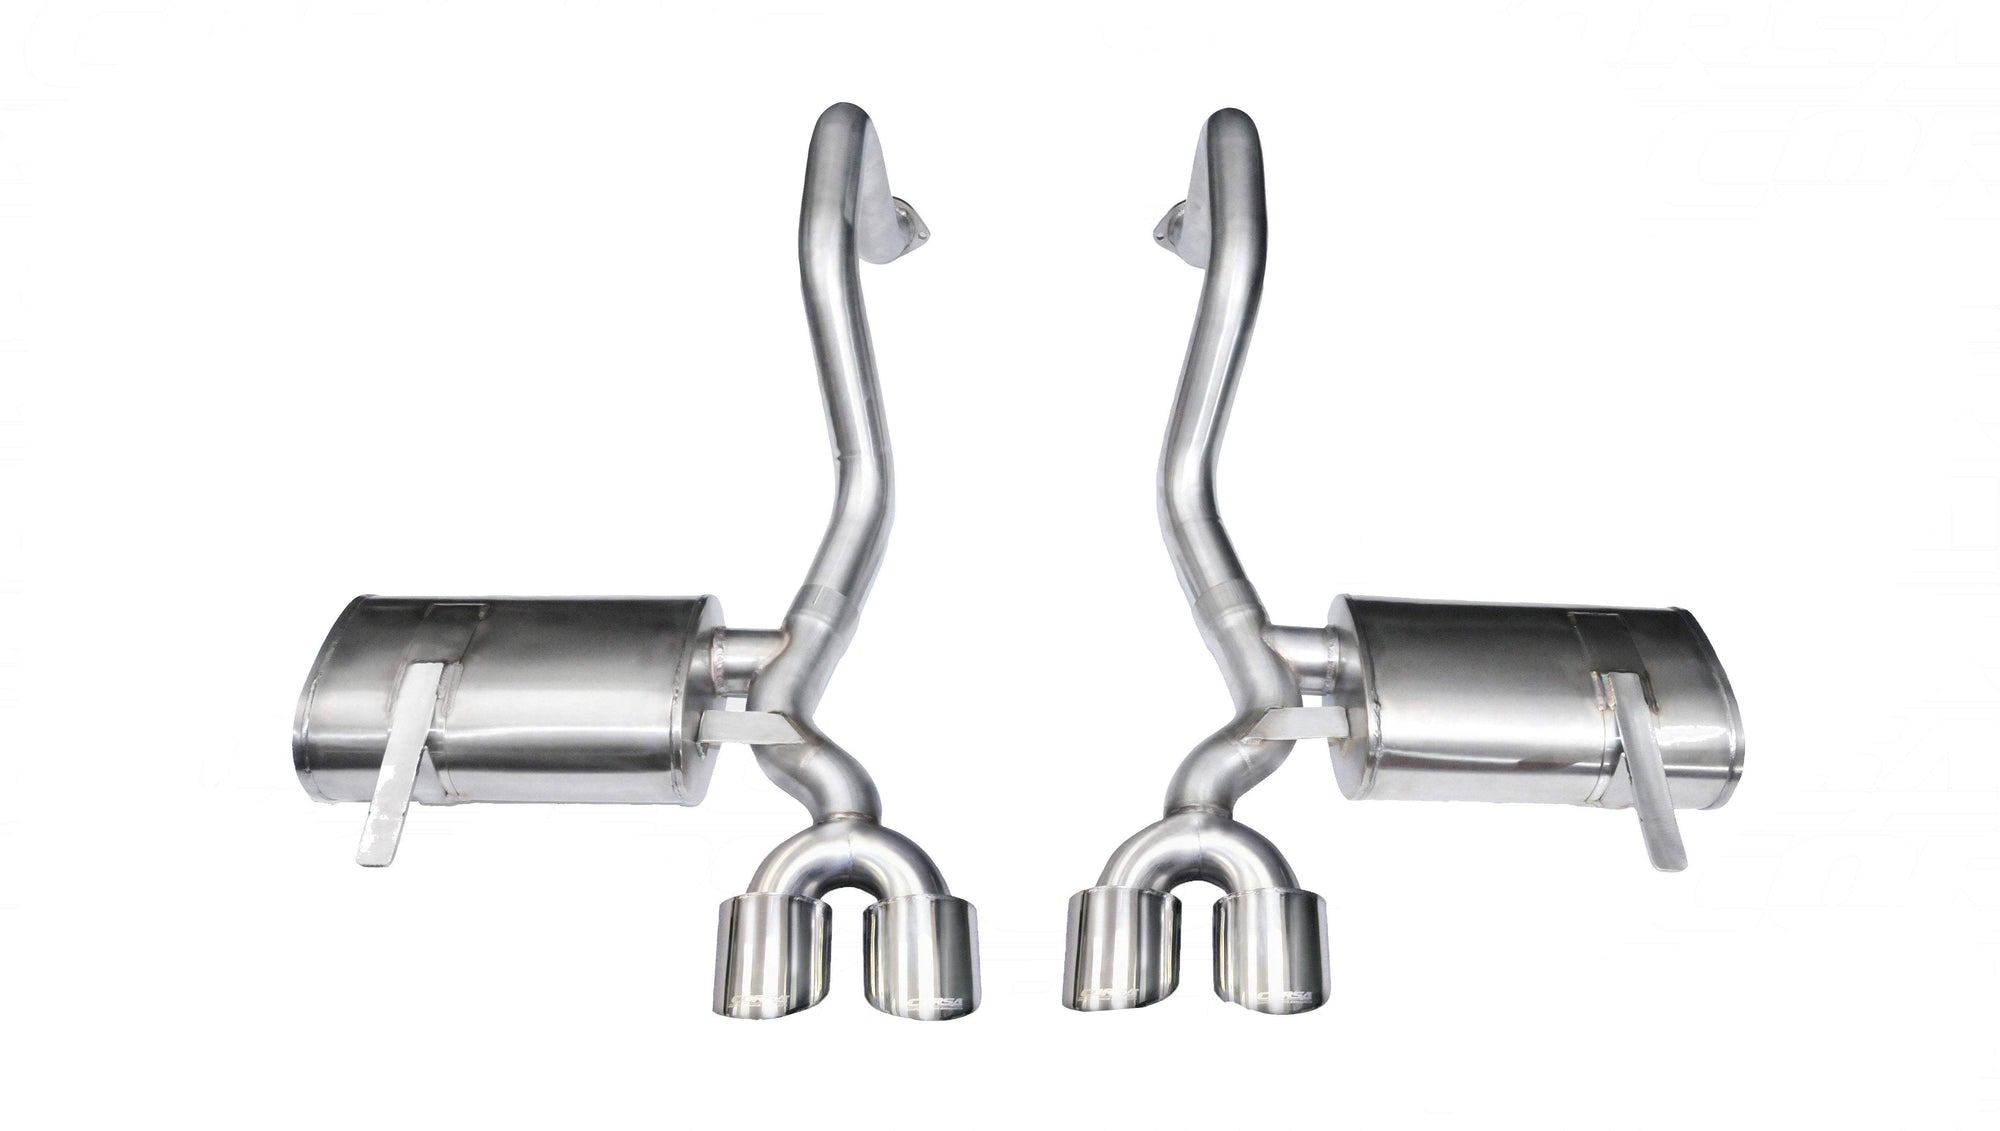 "CORSA PERFORMANCE Axle-Back Exhaust Polished / Xtreme / Dual Rear - Twin 4in 1997-2004 Chevrolet Corvette C5/ C5 Z06 5.7L V8, 2.5"" Dual Rear Exit Axle-Back Exhaust System with Twin 4.0"" Tips (14961) Xtreme Sound Level"